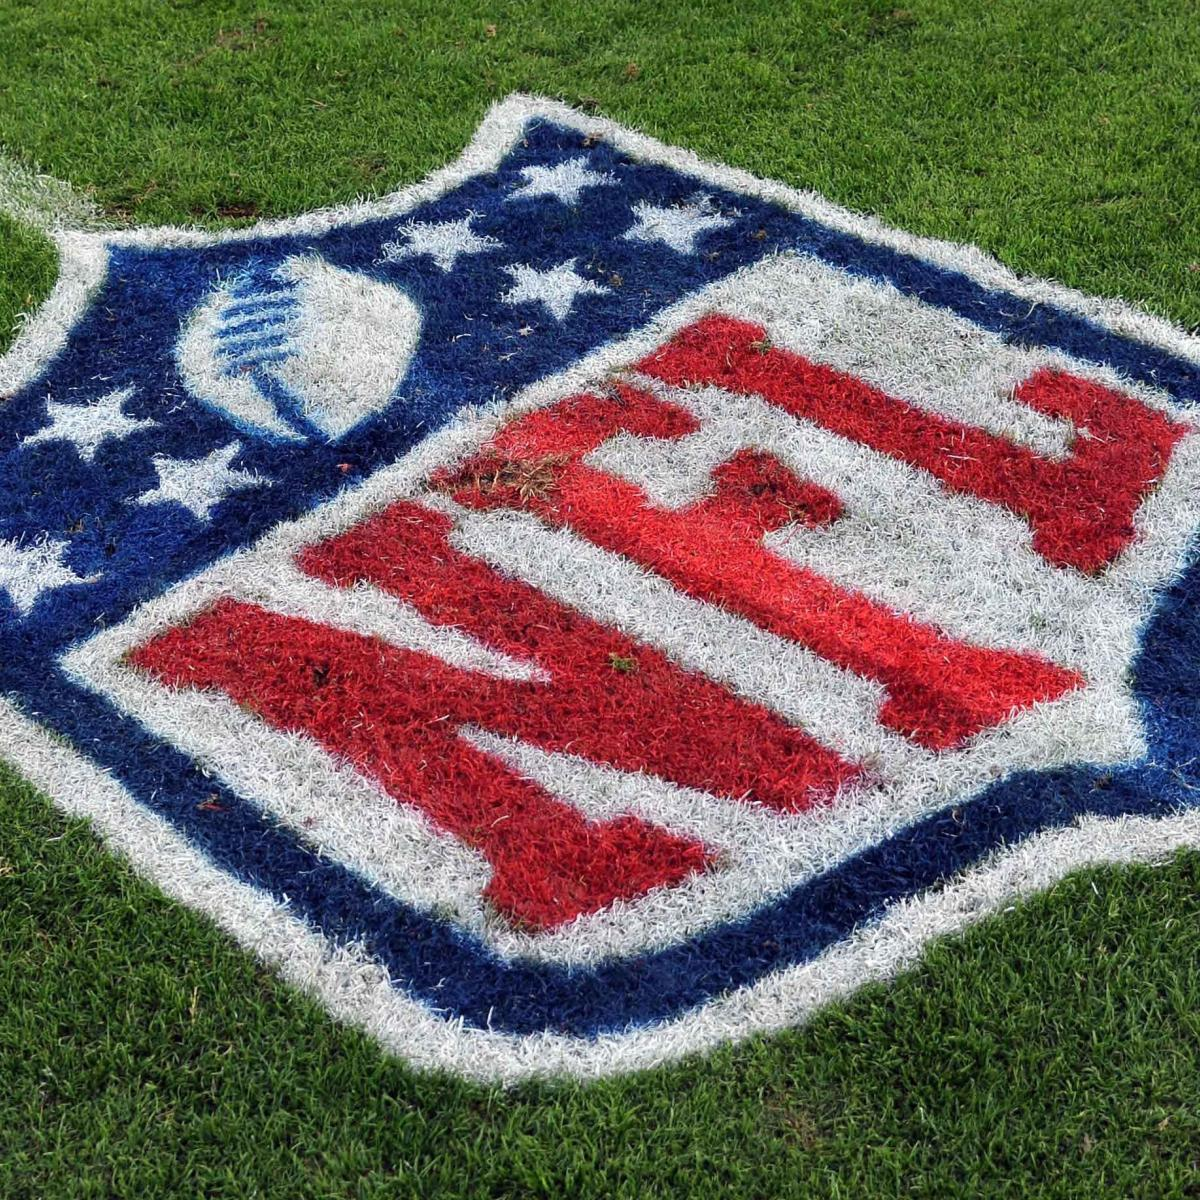 d4266bd7074 NFL: How All 32 Teams Got Their Names | Bleacher Report | Latest News,  Videos and Highlights